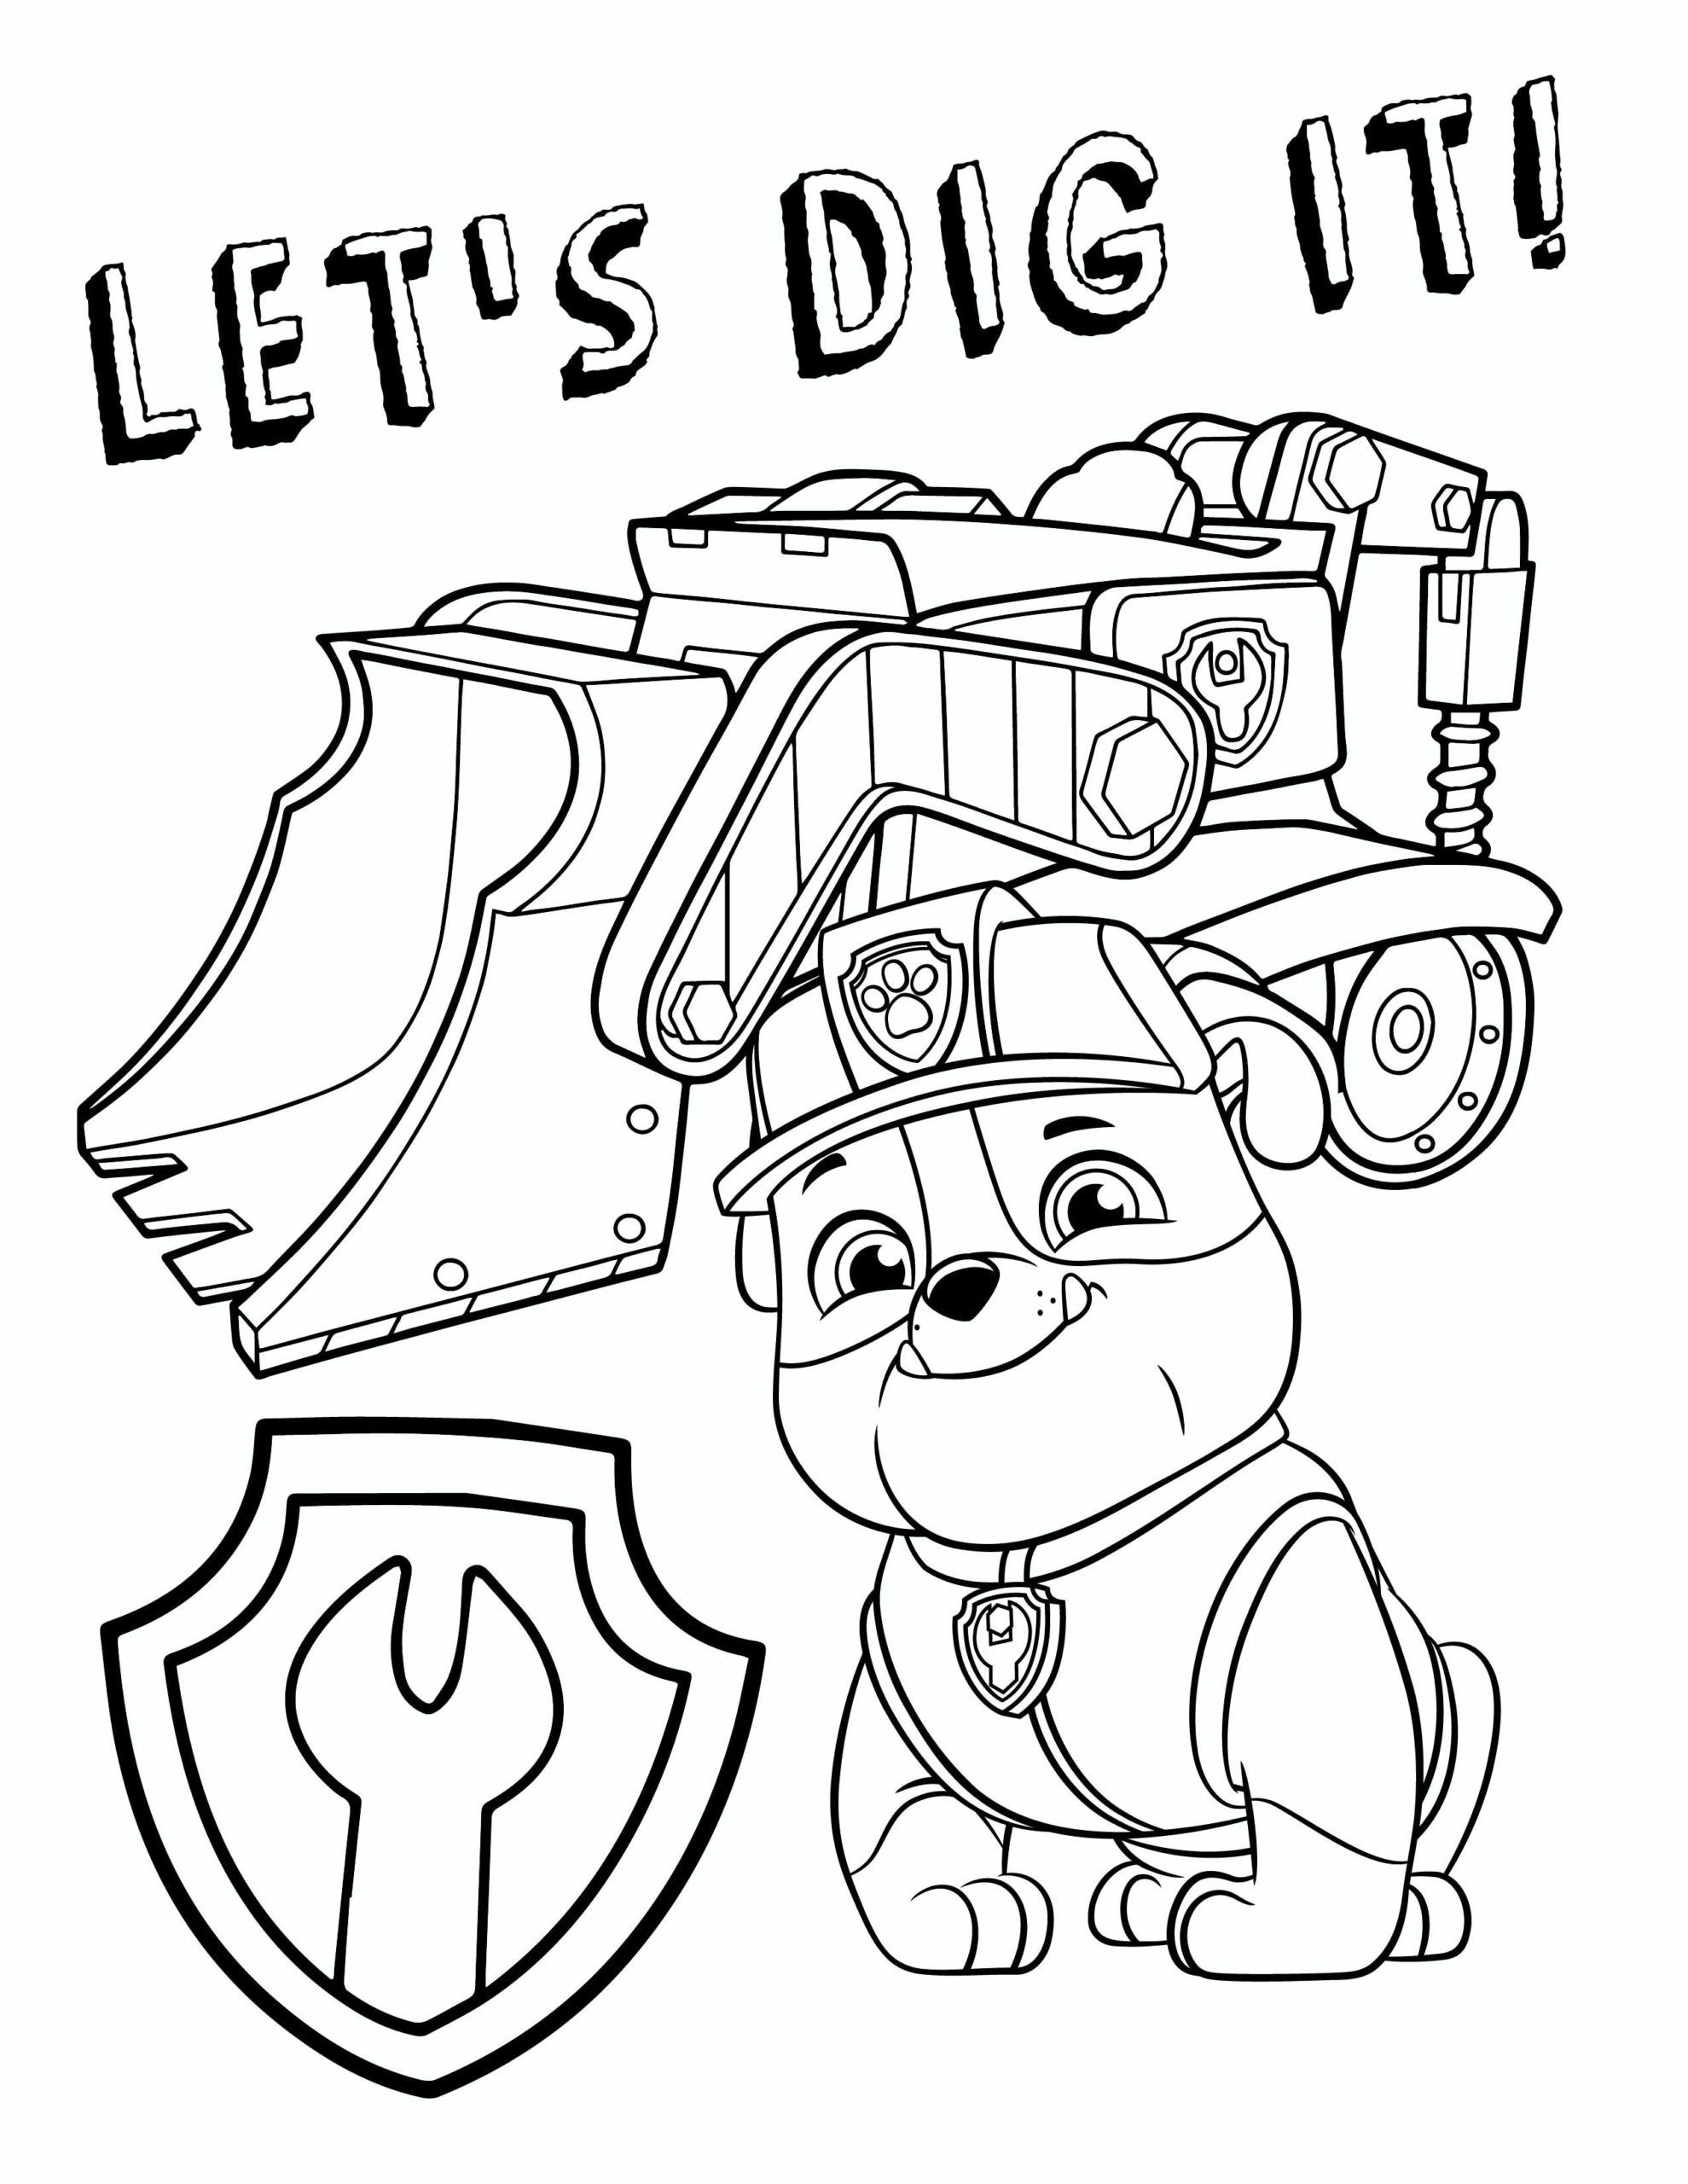 Colouring Page Paw Patrol Coloring Pages Paw Patrol Coloring Cartoon Coloring Pages